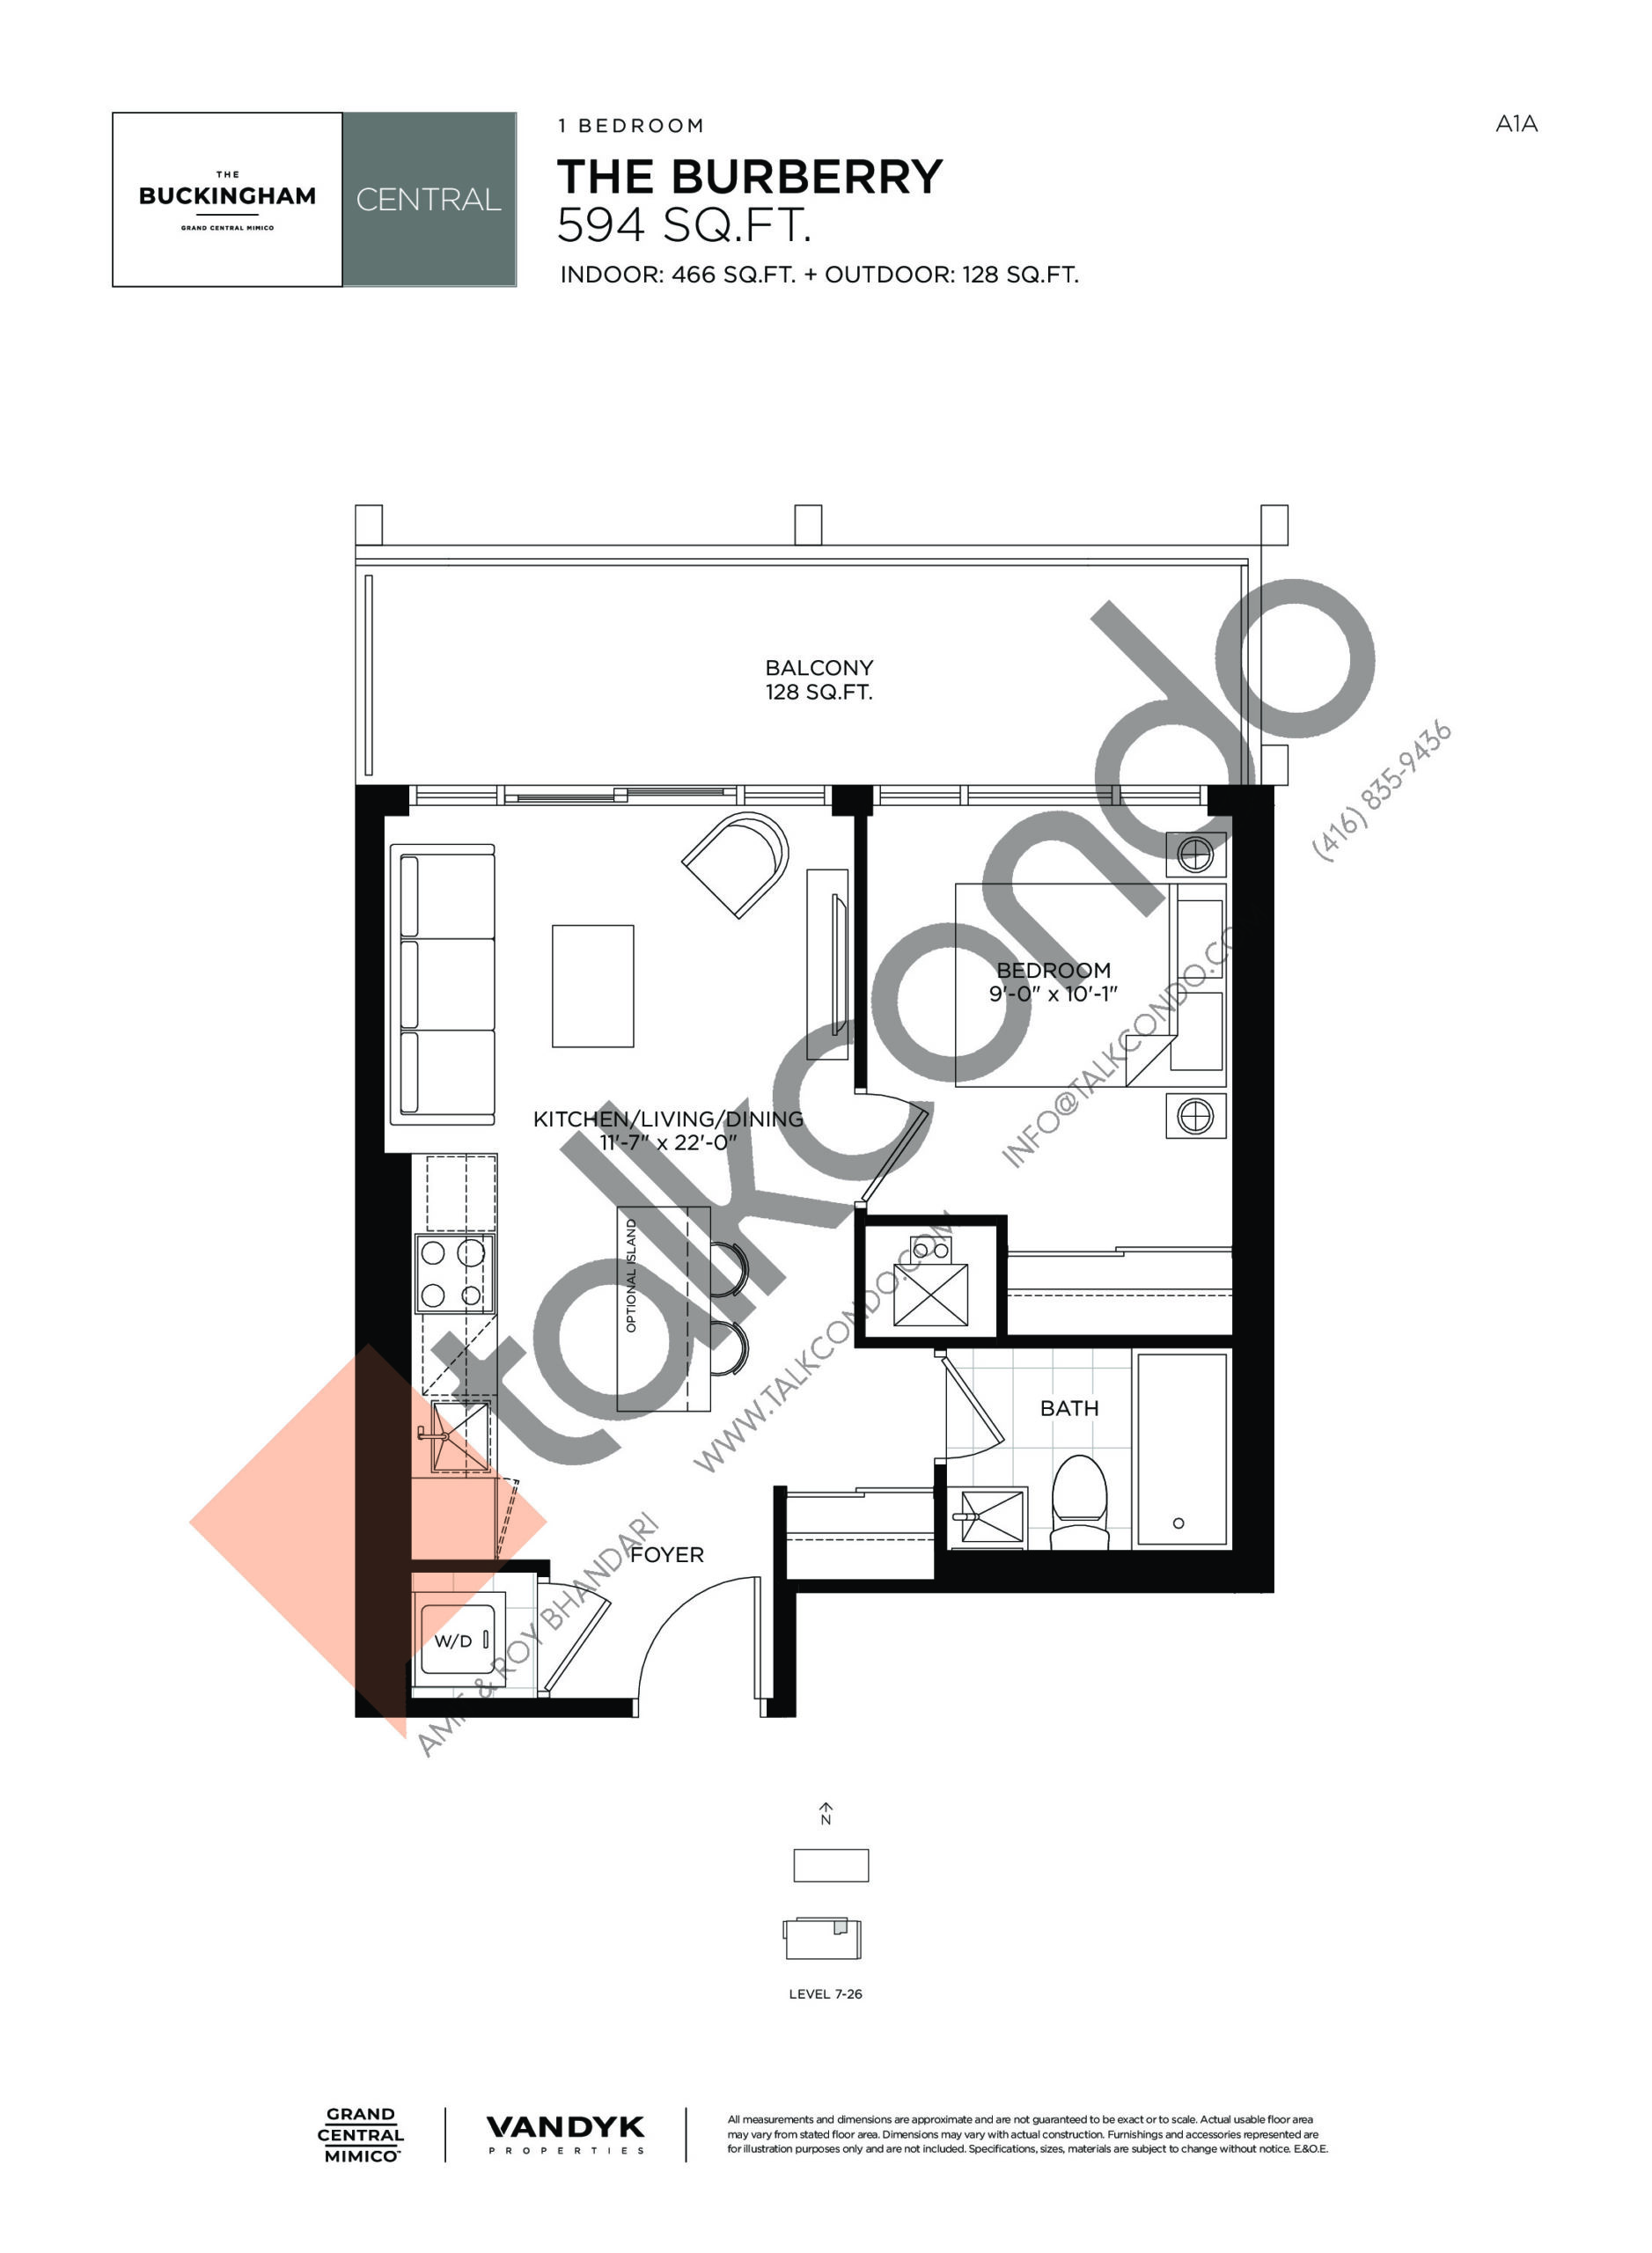 The Burberry Floor Plan at Grand Central Mimico Condos - 466 sq.ft